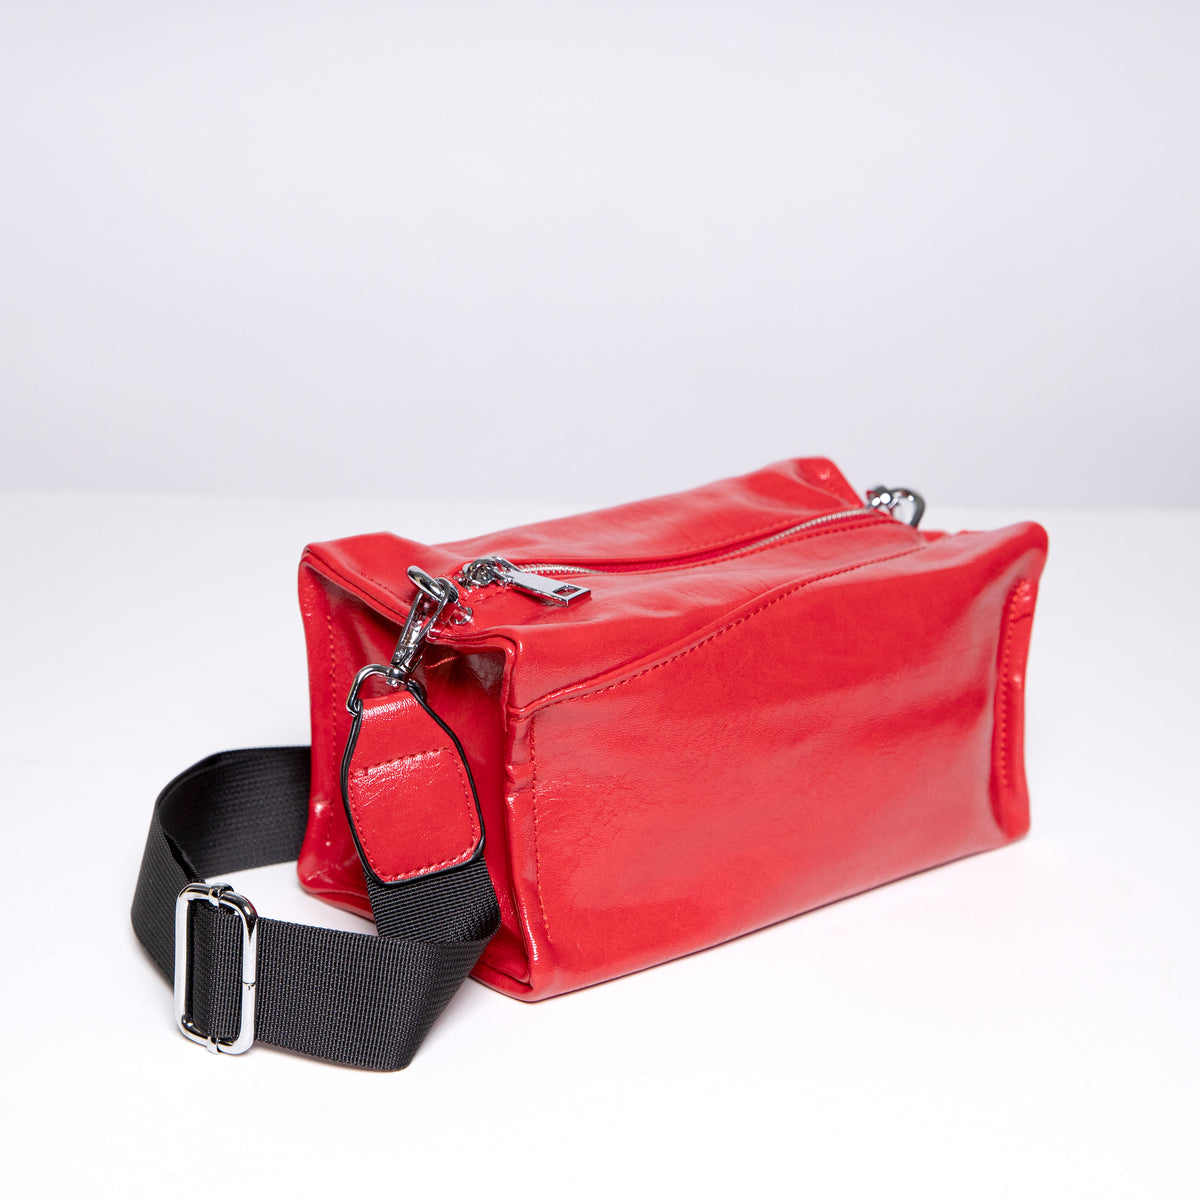 Boxy Bag in Red